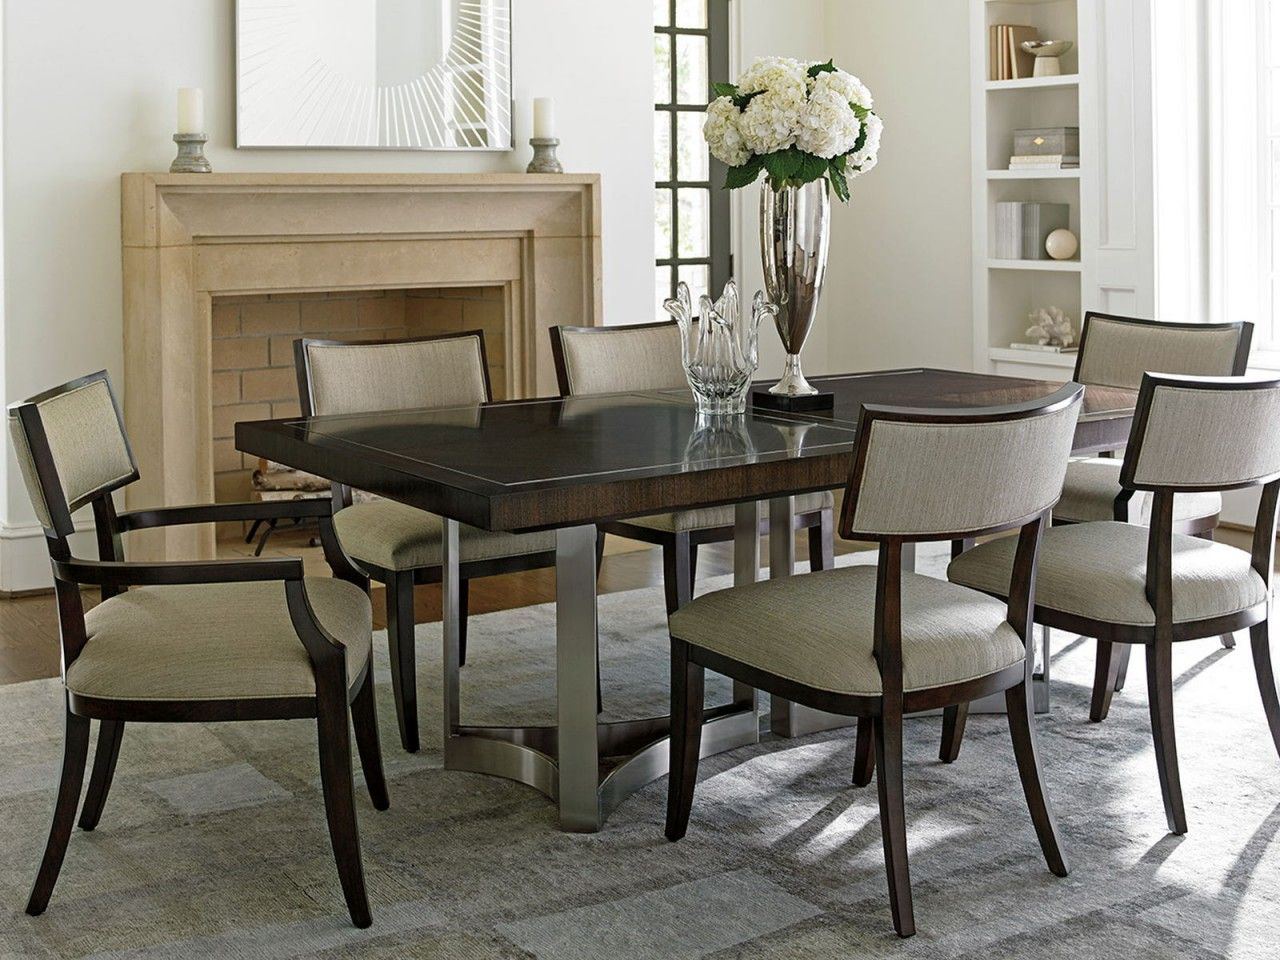 Lexington Furniture Macarthur Park Beverly Place Rectangular Dining Table 0729 876c By Dining Rooms Outlet Dining Table Lexington Furniture Furniture